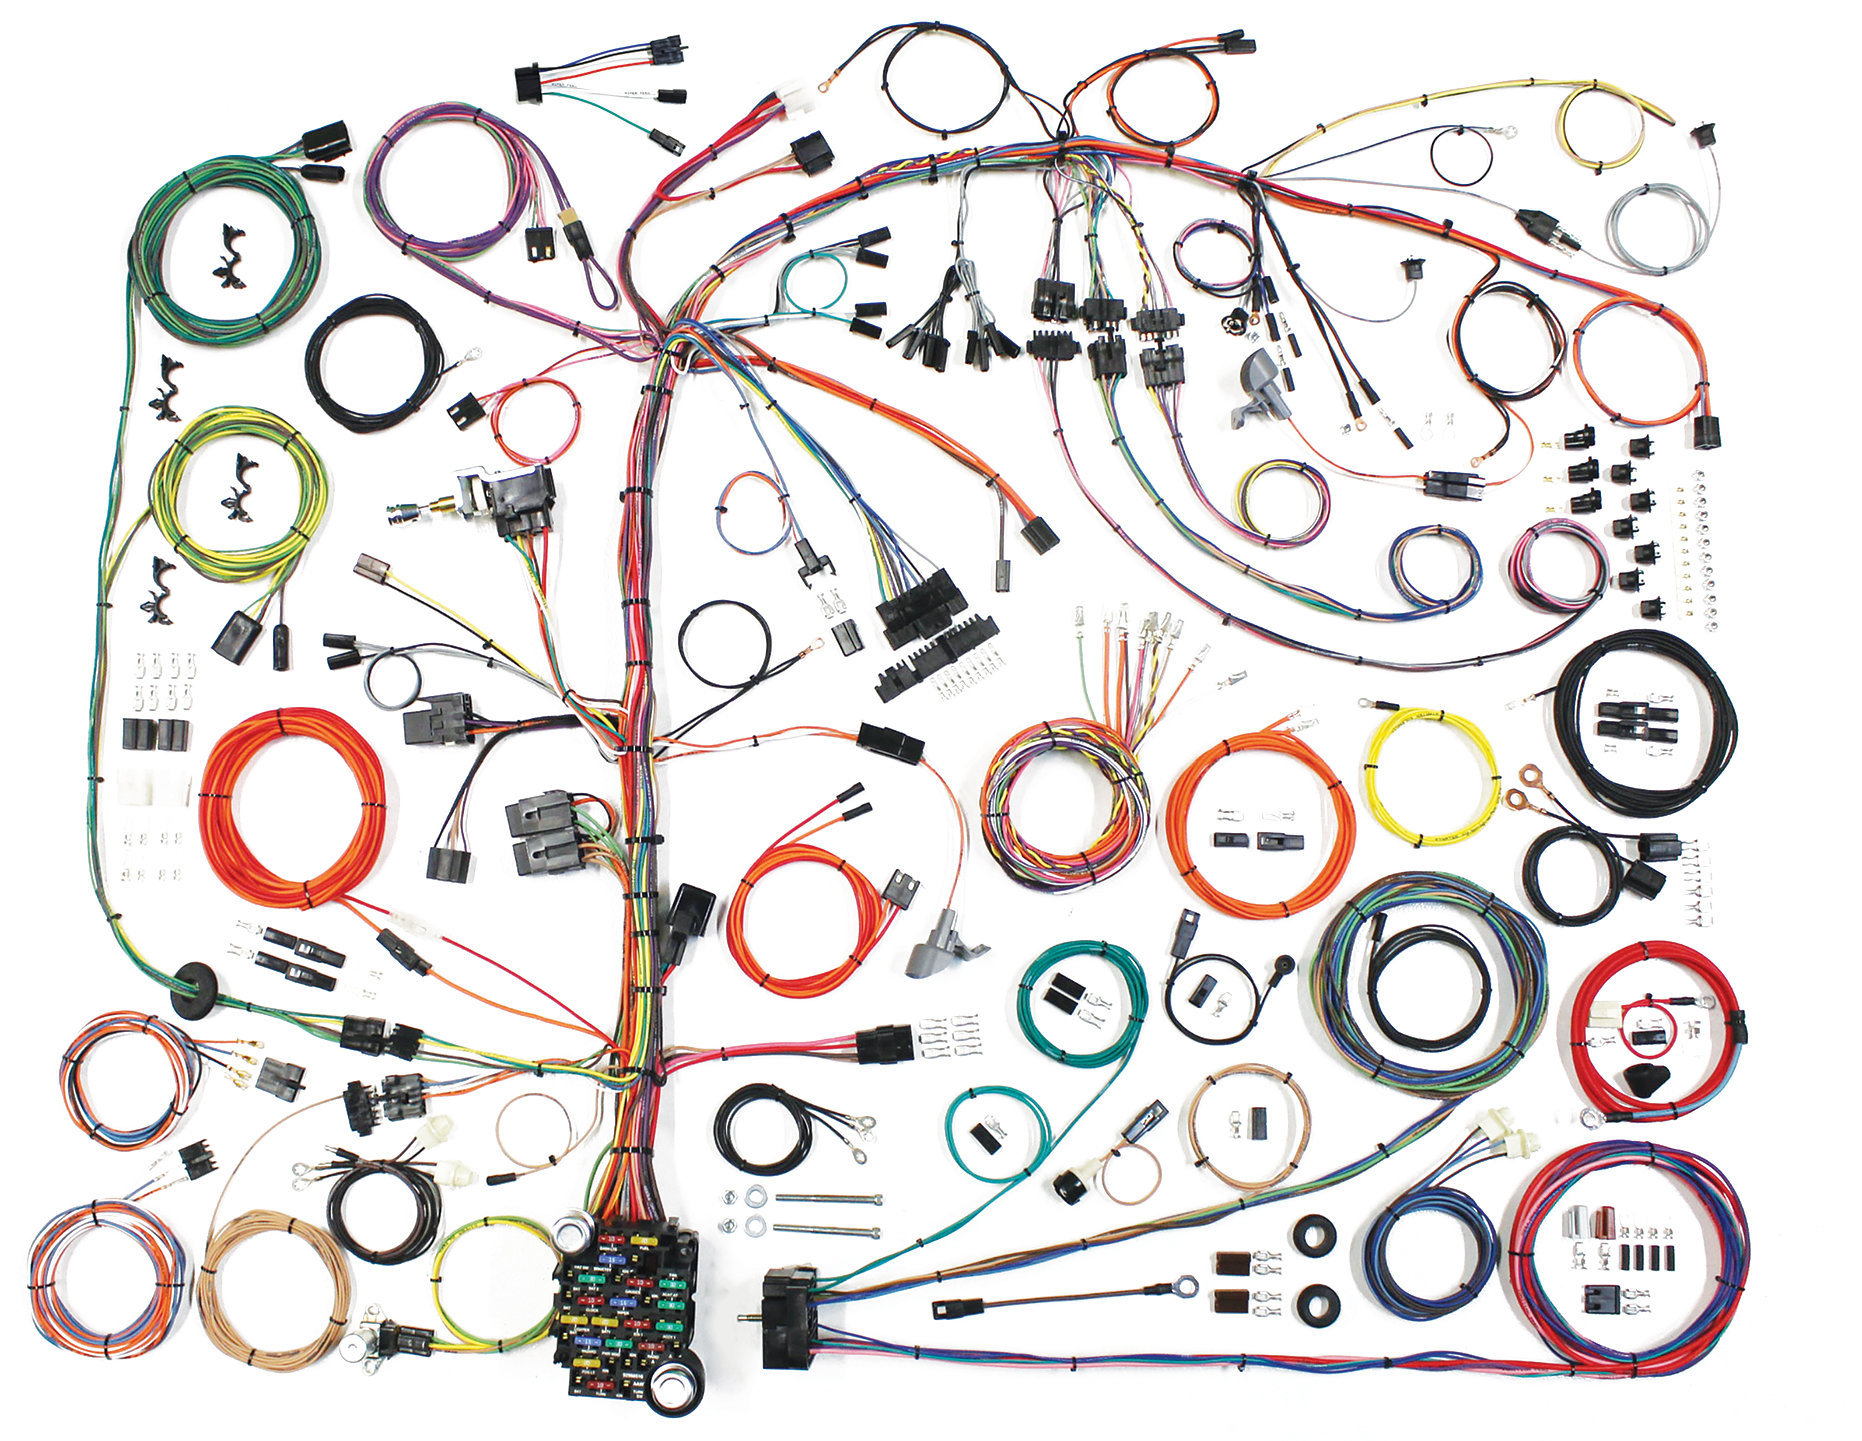 hight resolution of american autowire 510573 american autowire classic update wiringwiring harness for 76 86 jeep cj5 u0026